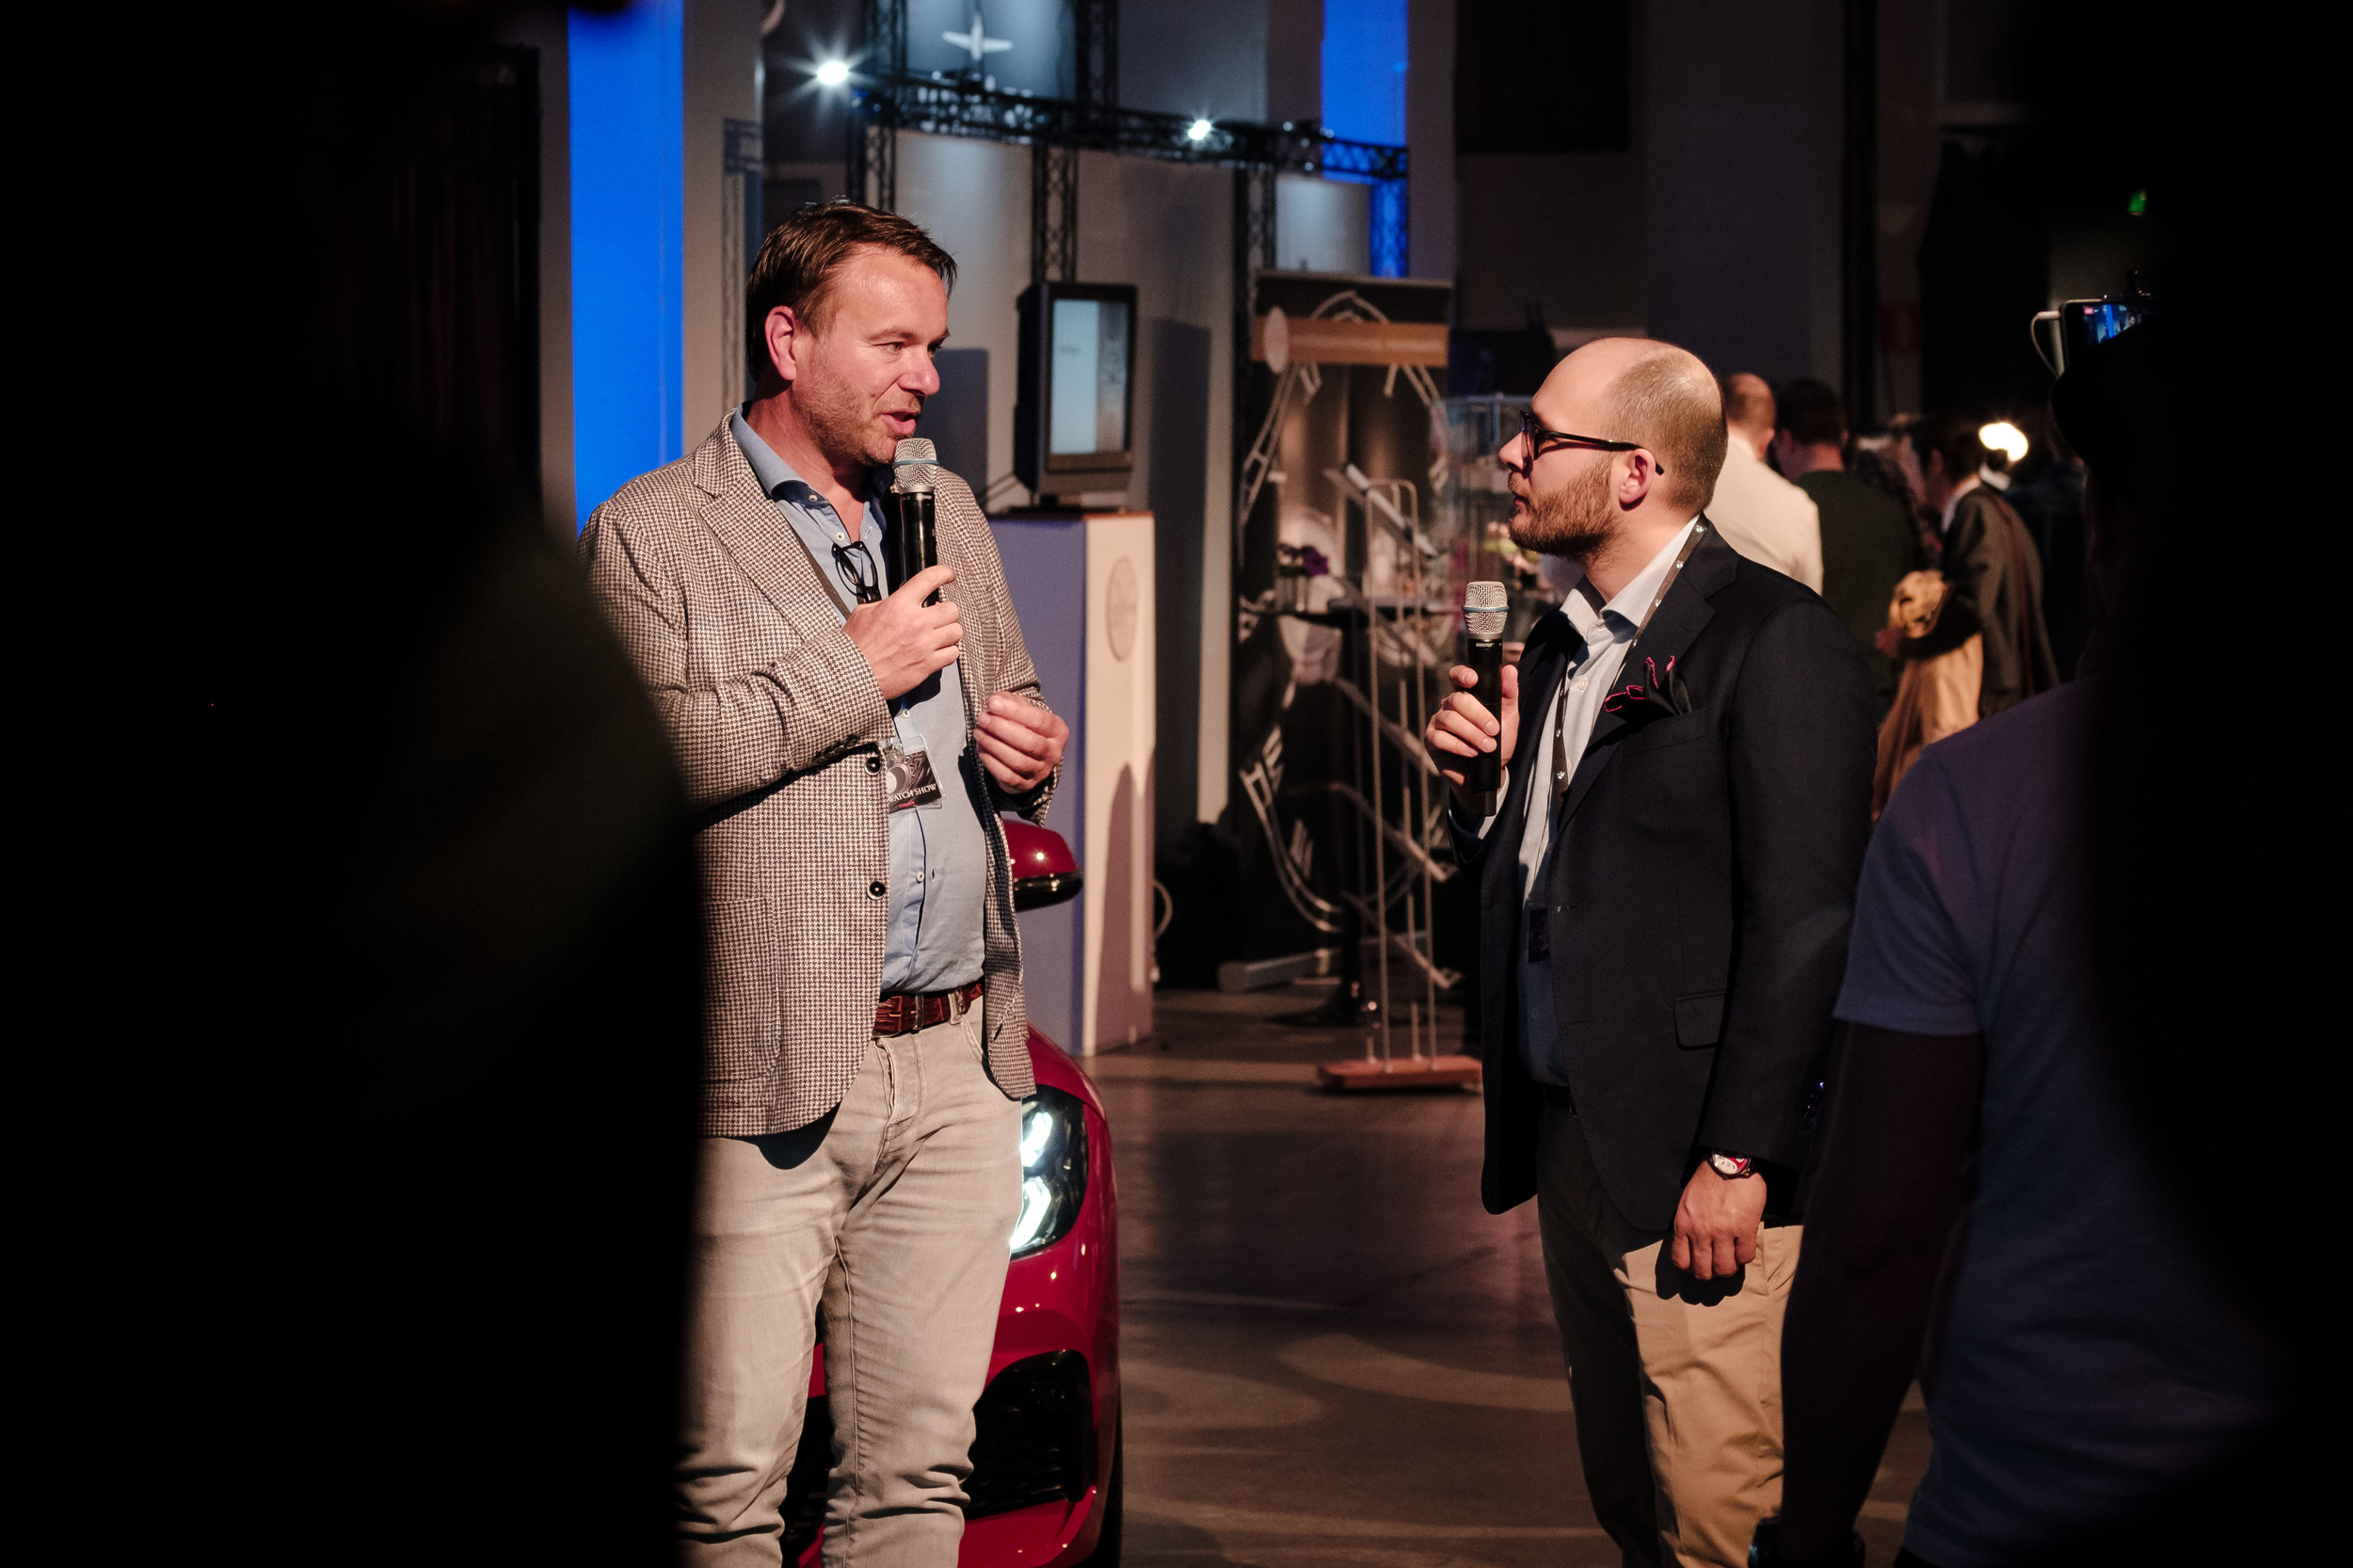 The founder of The Watch Show Finland Ville Arzoglou (right) interviewing Bart Grönefeld (left)